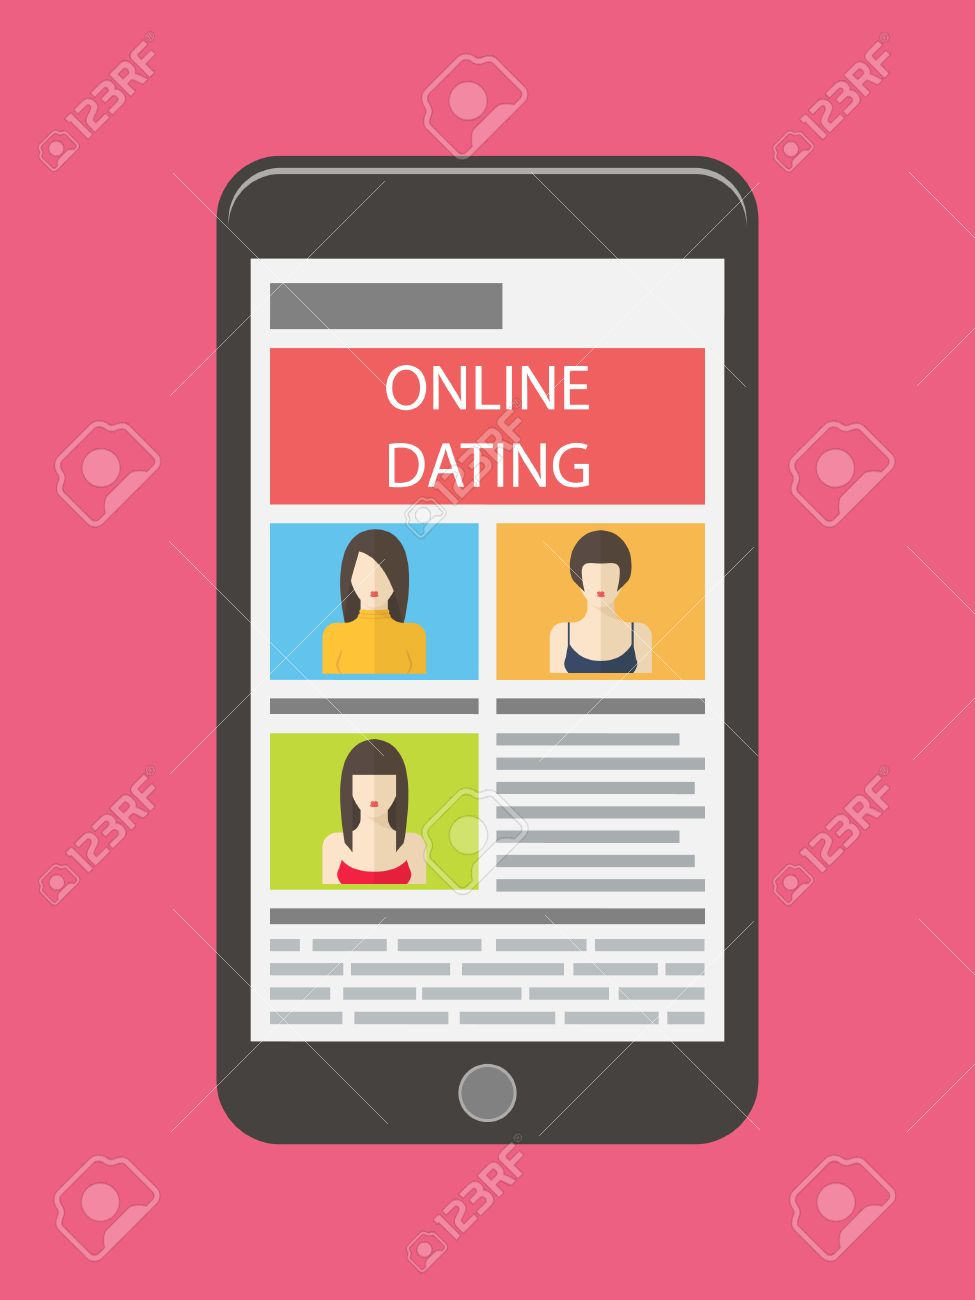 mobile-dating-online